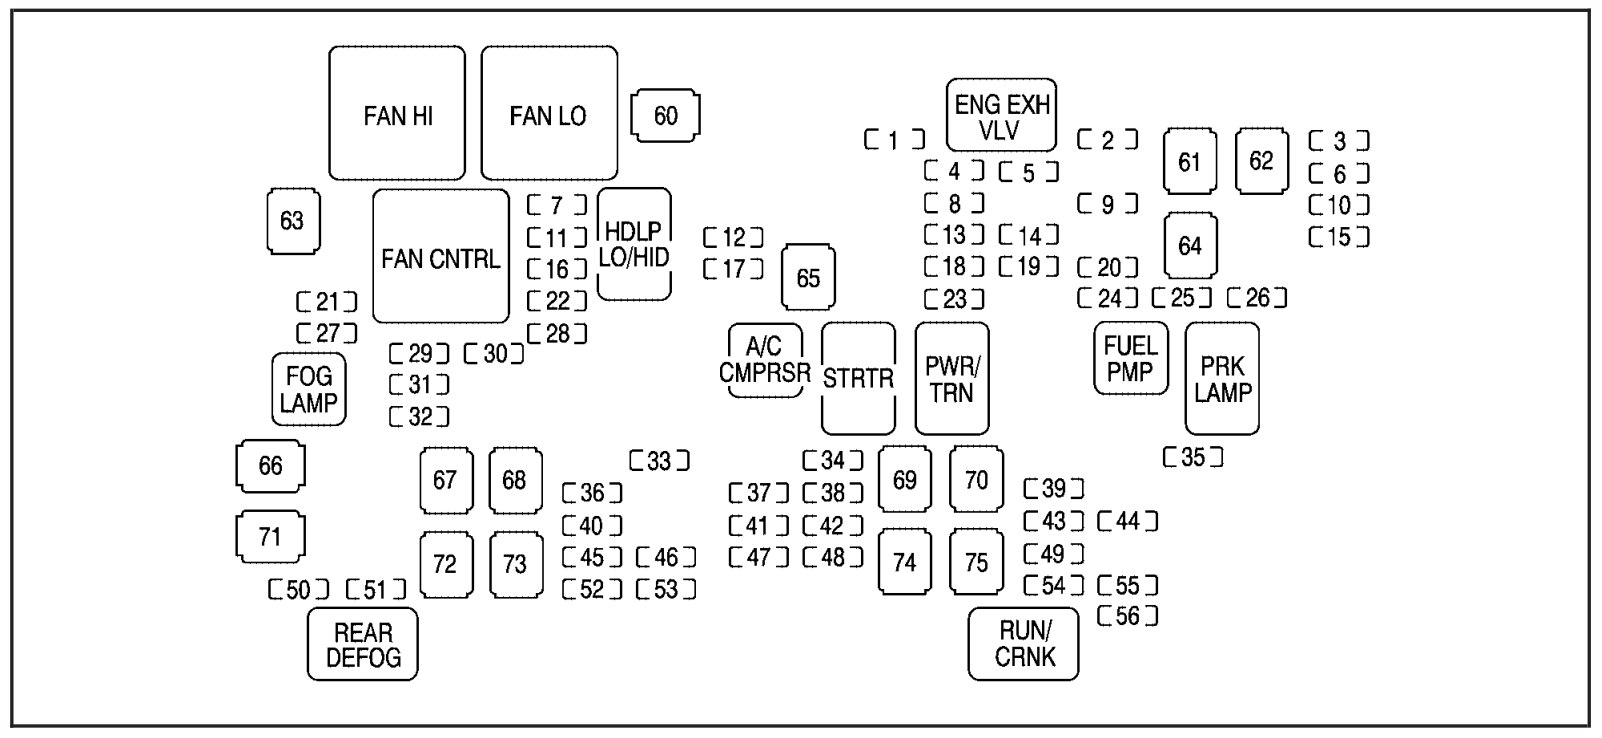 1998 Tahoe Fuse Diagram Nice Place To Get Wiring Chevrolet Suburban Chevy Box Todays Rh 10 18 9 1813weddingbarn Com